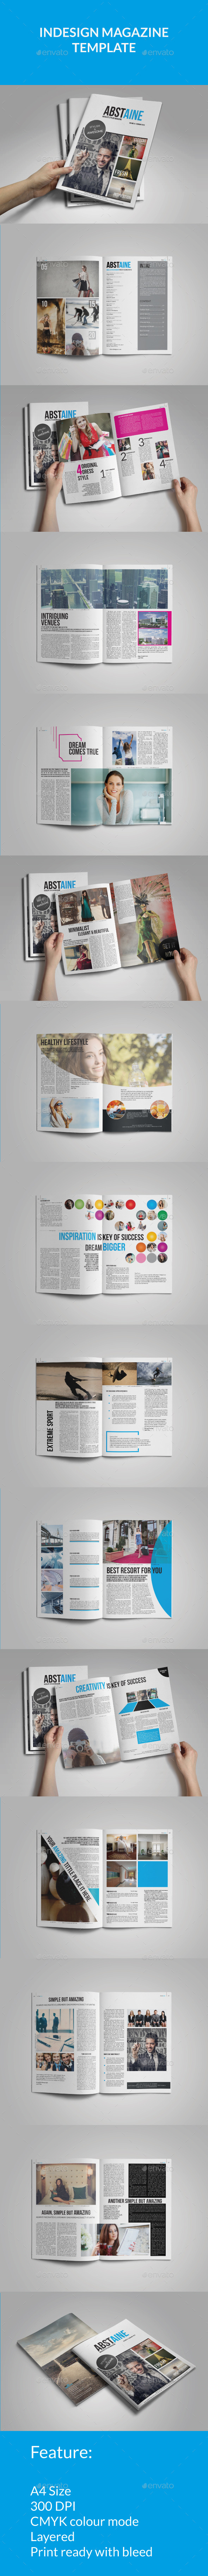 GraphicRiver Absulute Stylish Magazine Template 10508491